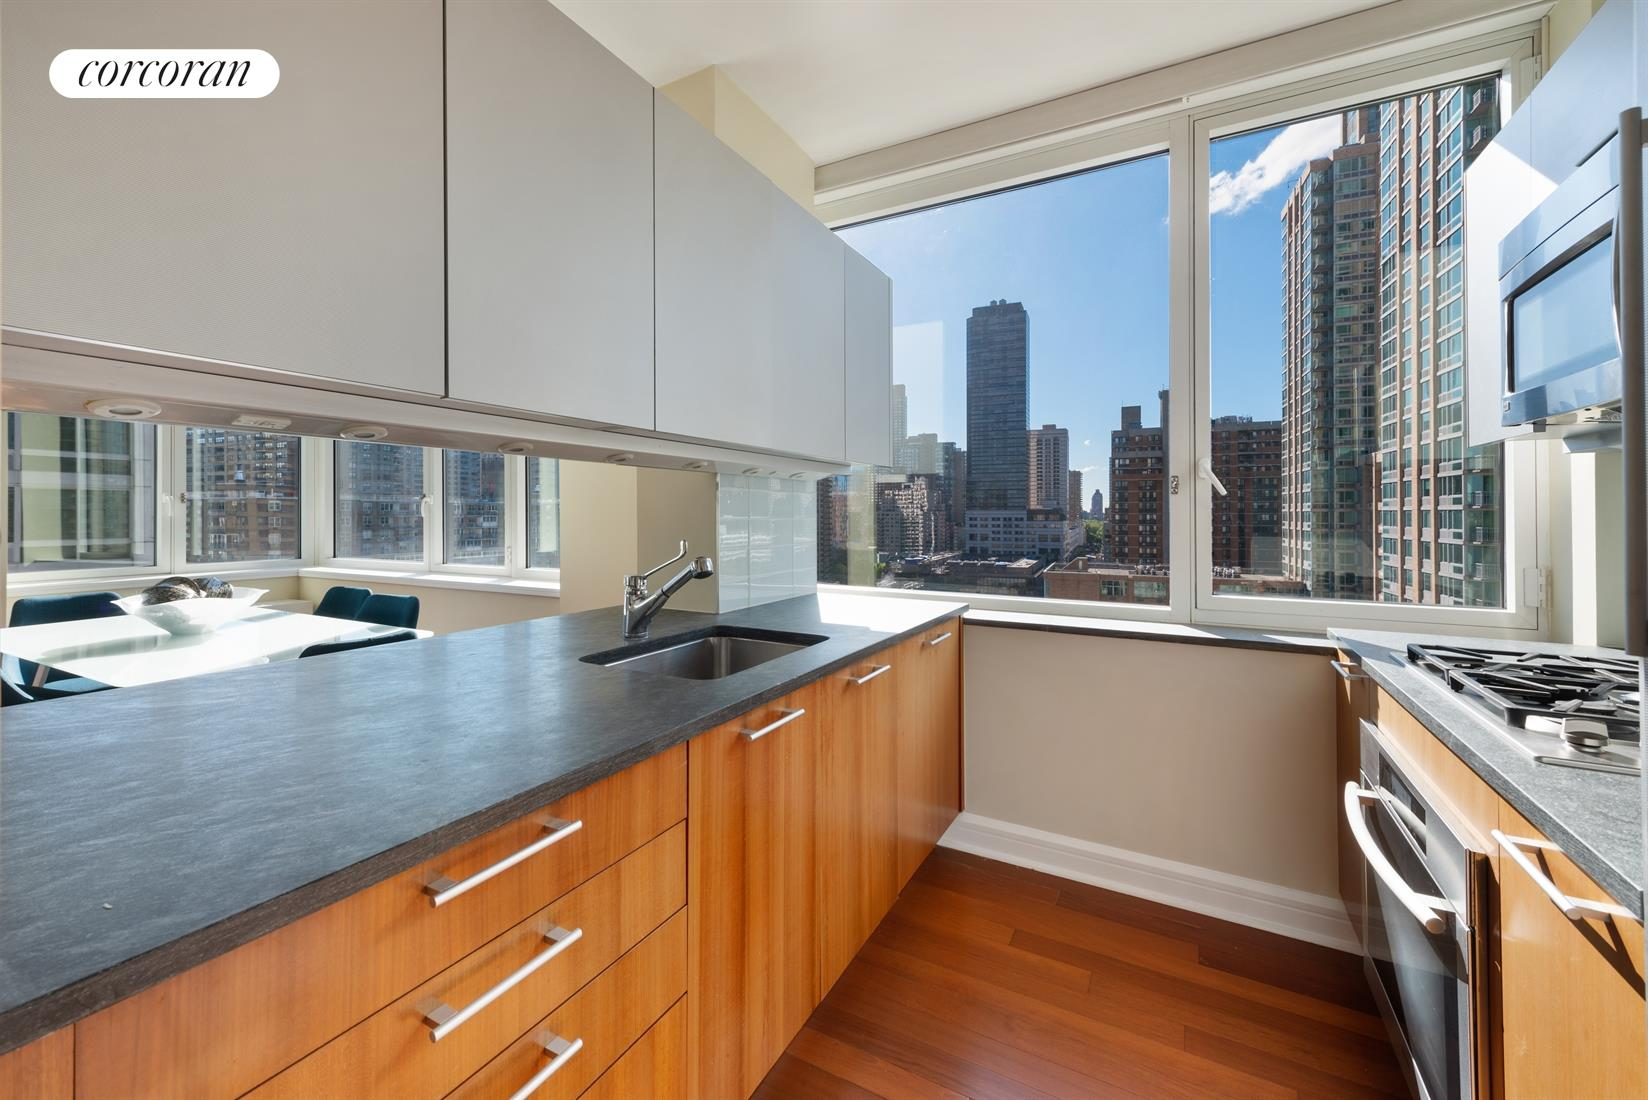 100 Riverside Boulevard, Apt 19B, Manhattan, New York 10069